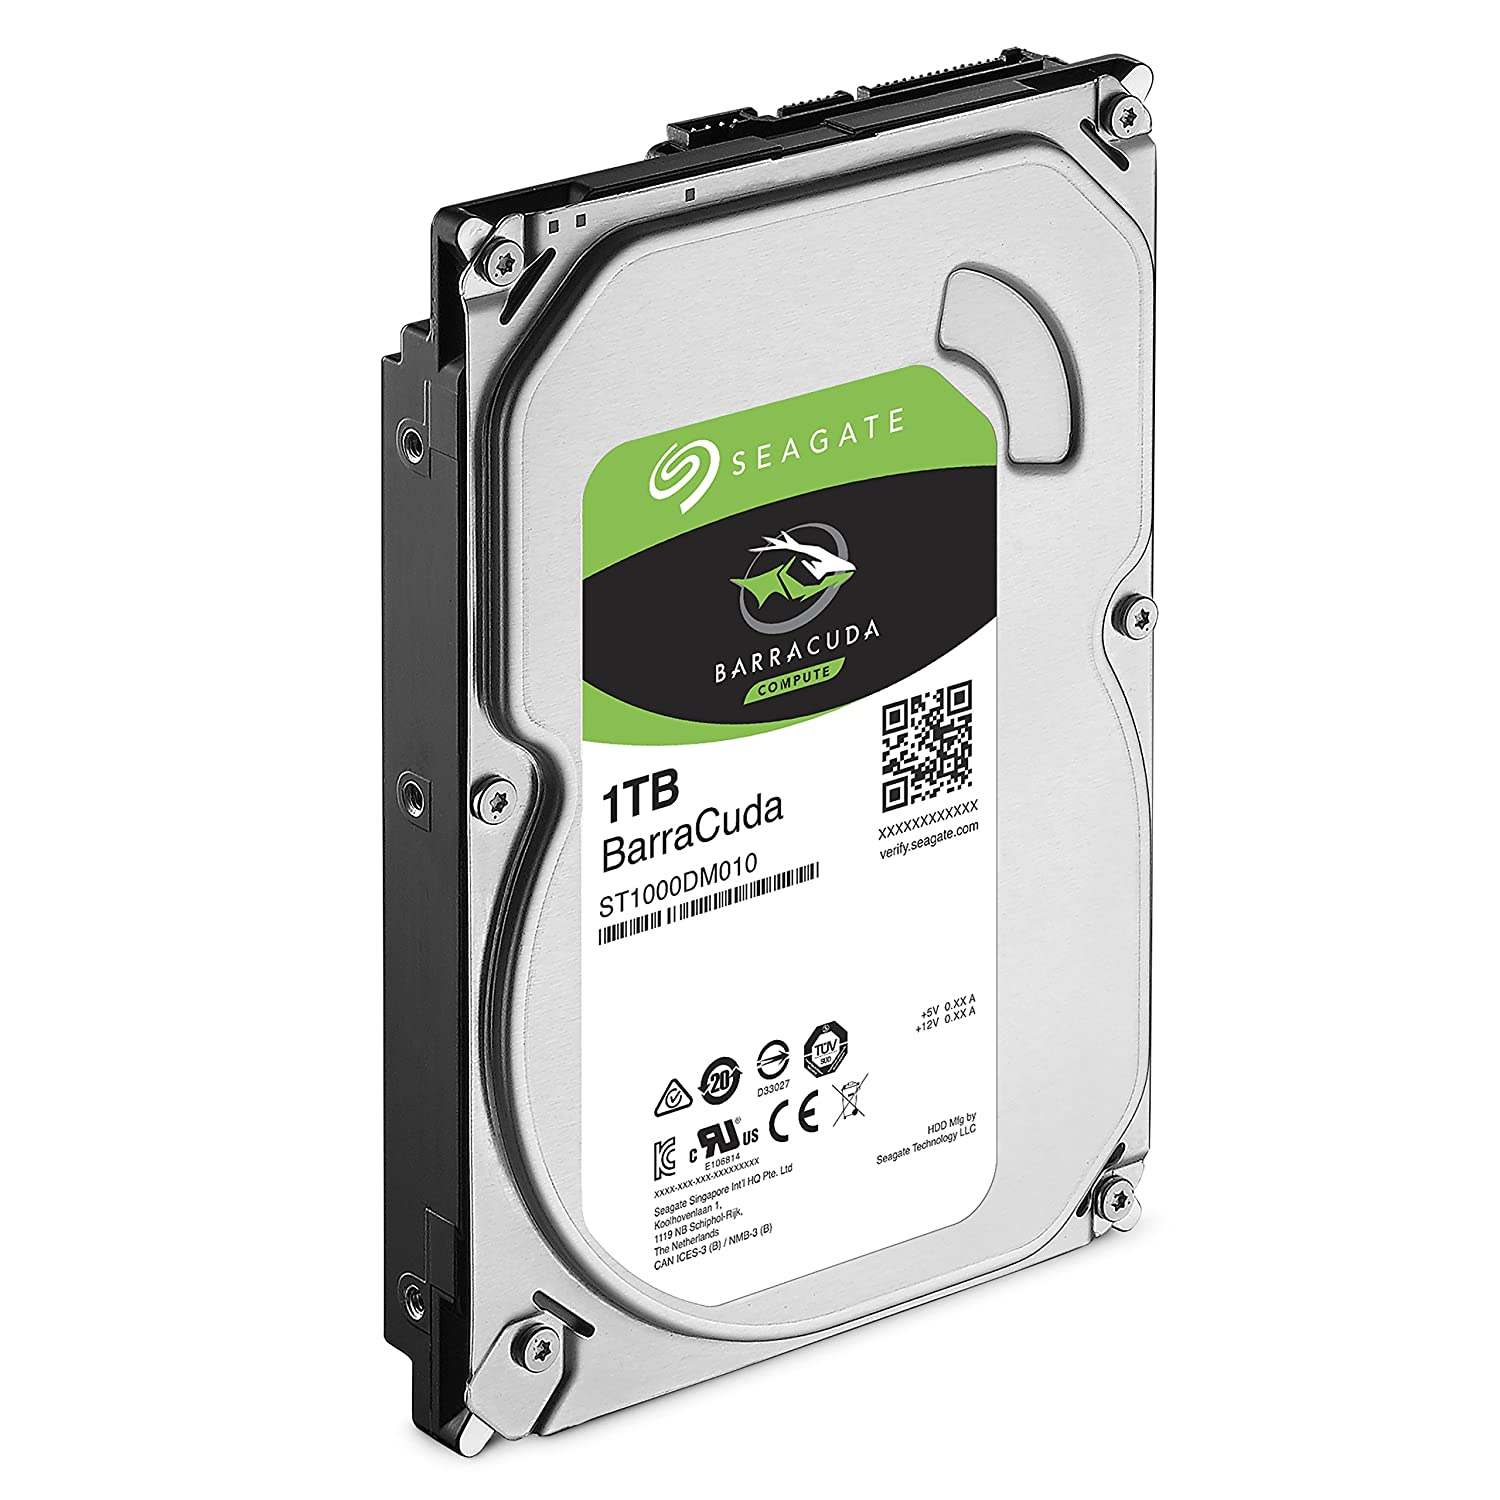 Seagate Barracuda Internal Hard Drive 1tb Sata 6gb S 35 Harddisk Casing 64mb Cache Inch St1000dm010 Computers Accessories